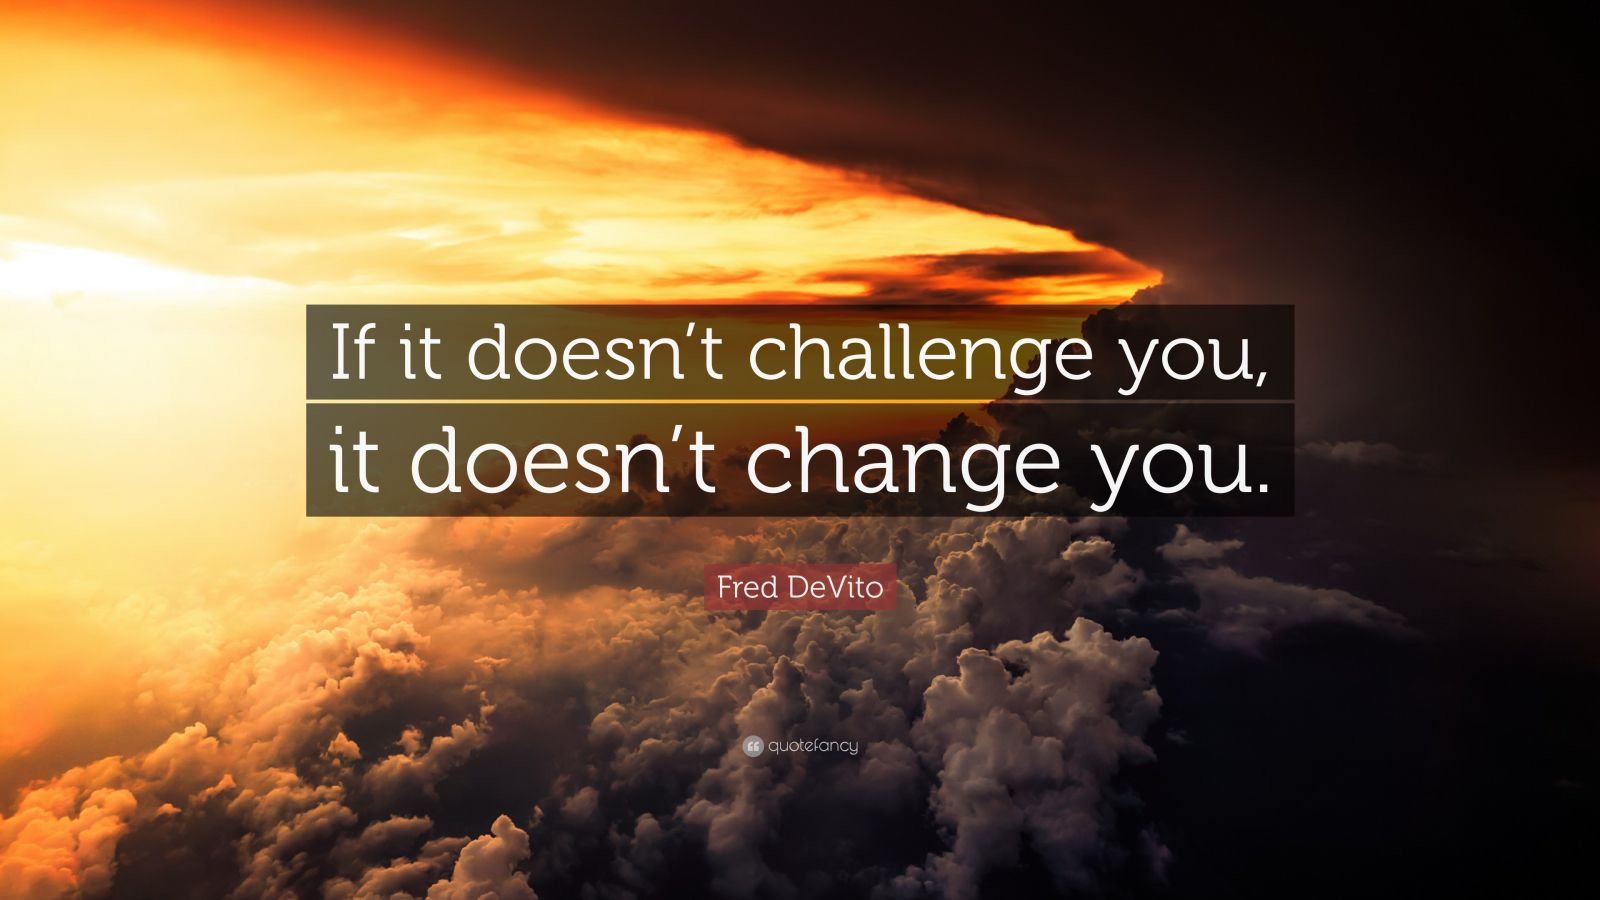 Brian Tracy Quotes Wallpaper Fred Devito Quote If It Doesn T Challenge You It Doesn